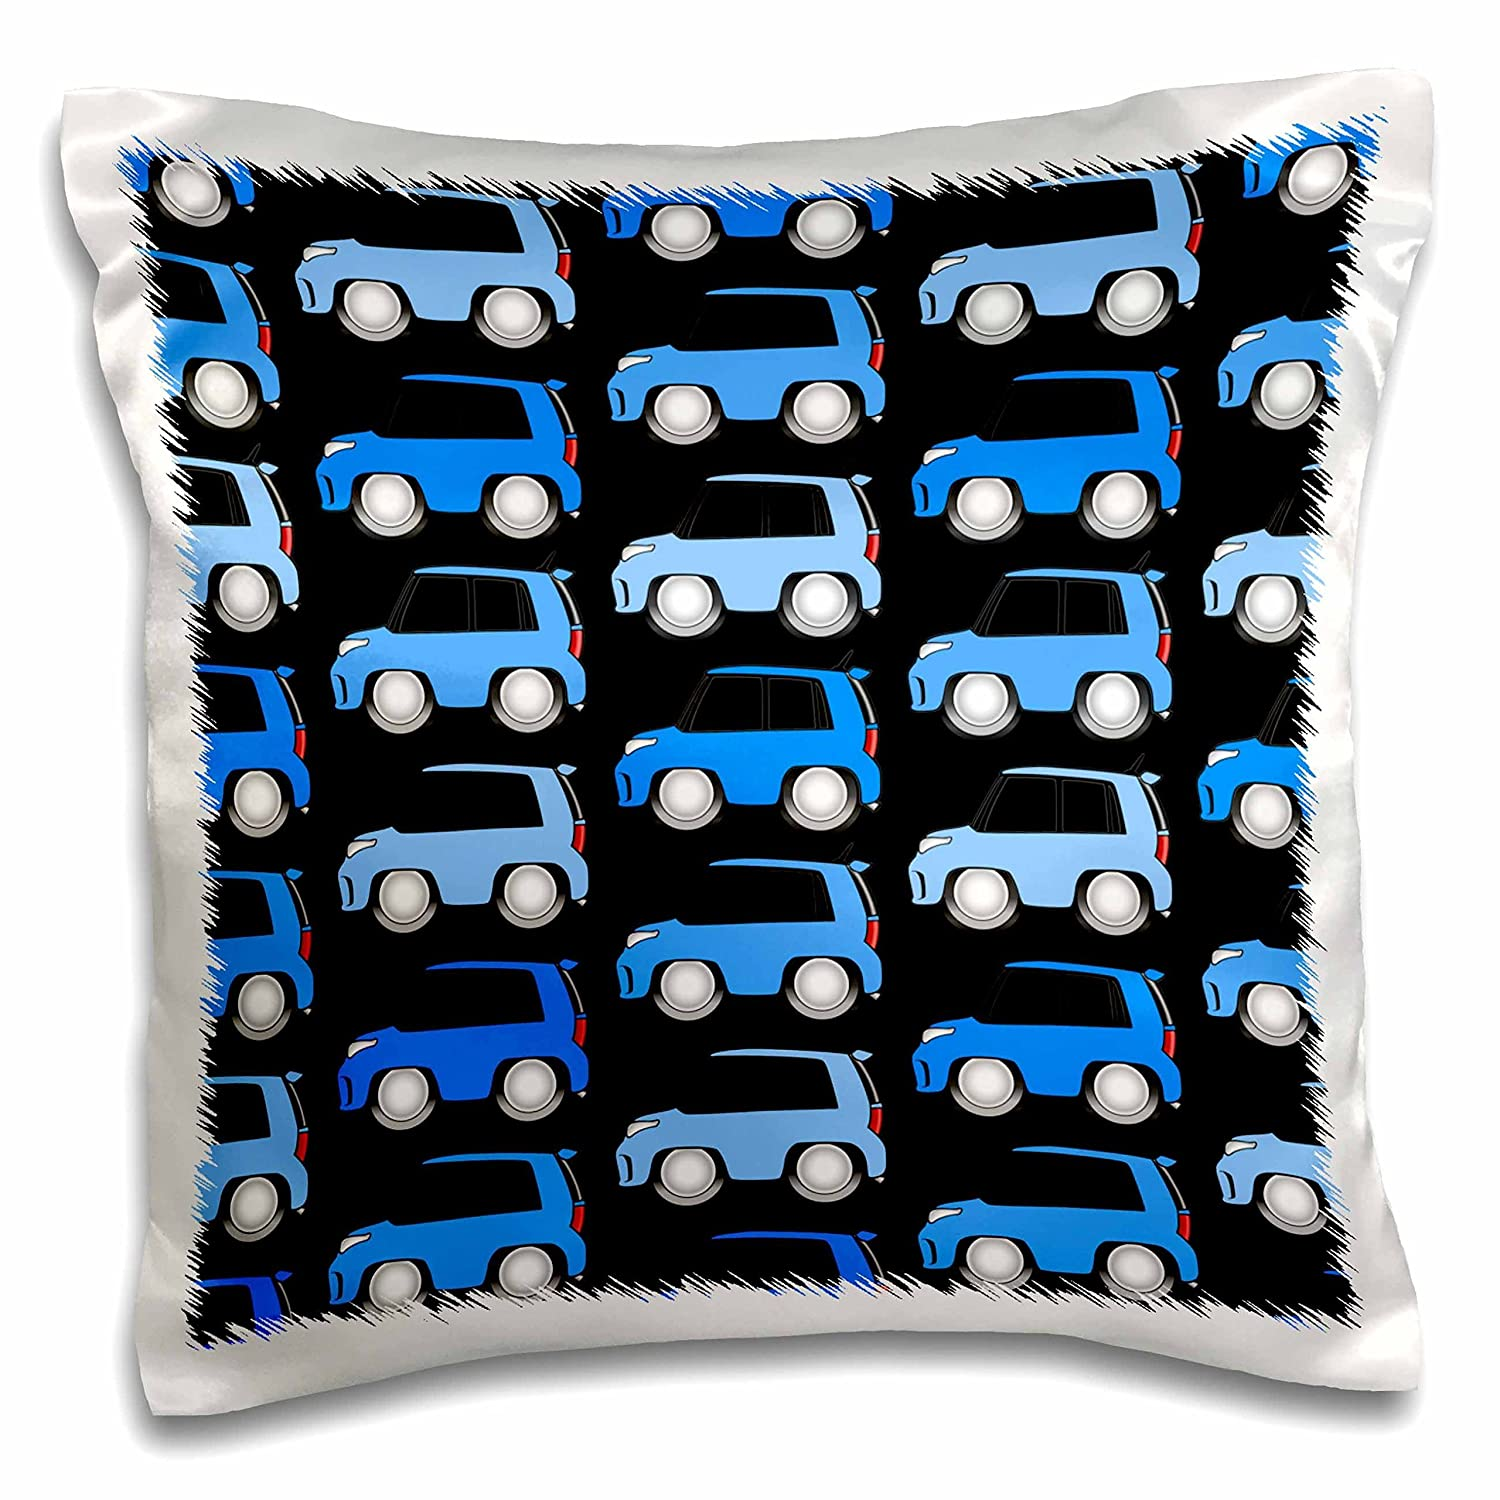 3drose Pc 81037 1 Voodoo Blue Xb Cartoon Car Pattern On A Black Background Pillow Case 16 By 16 Amazon In Home Kitchen